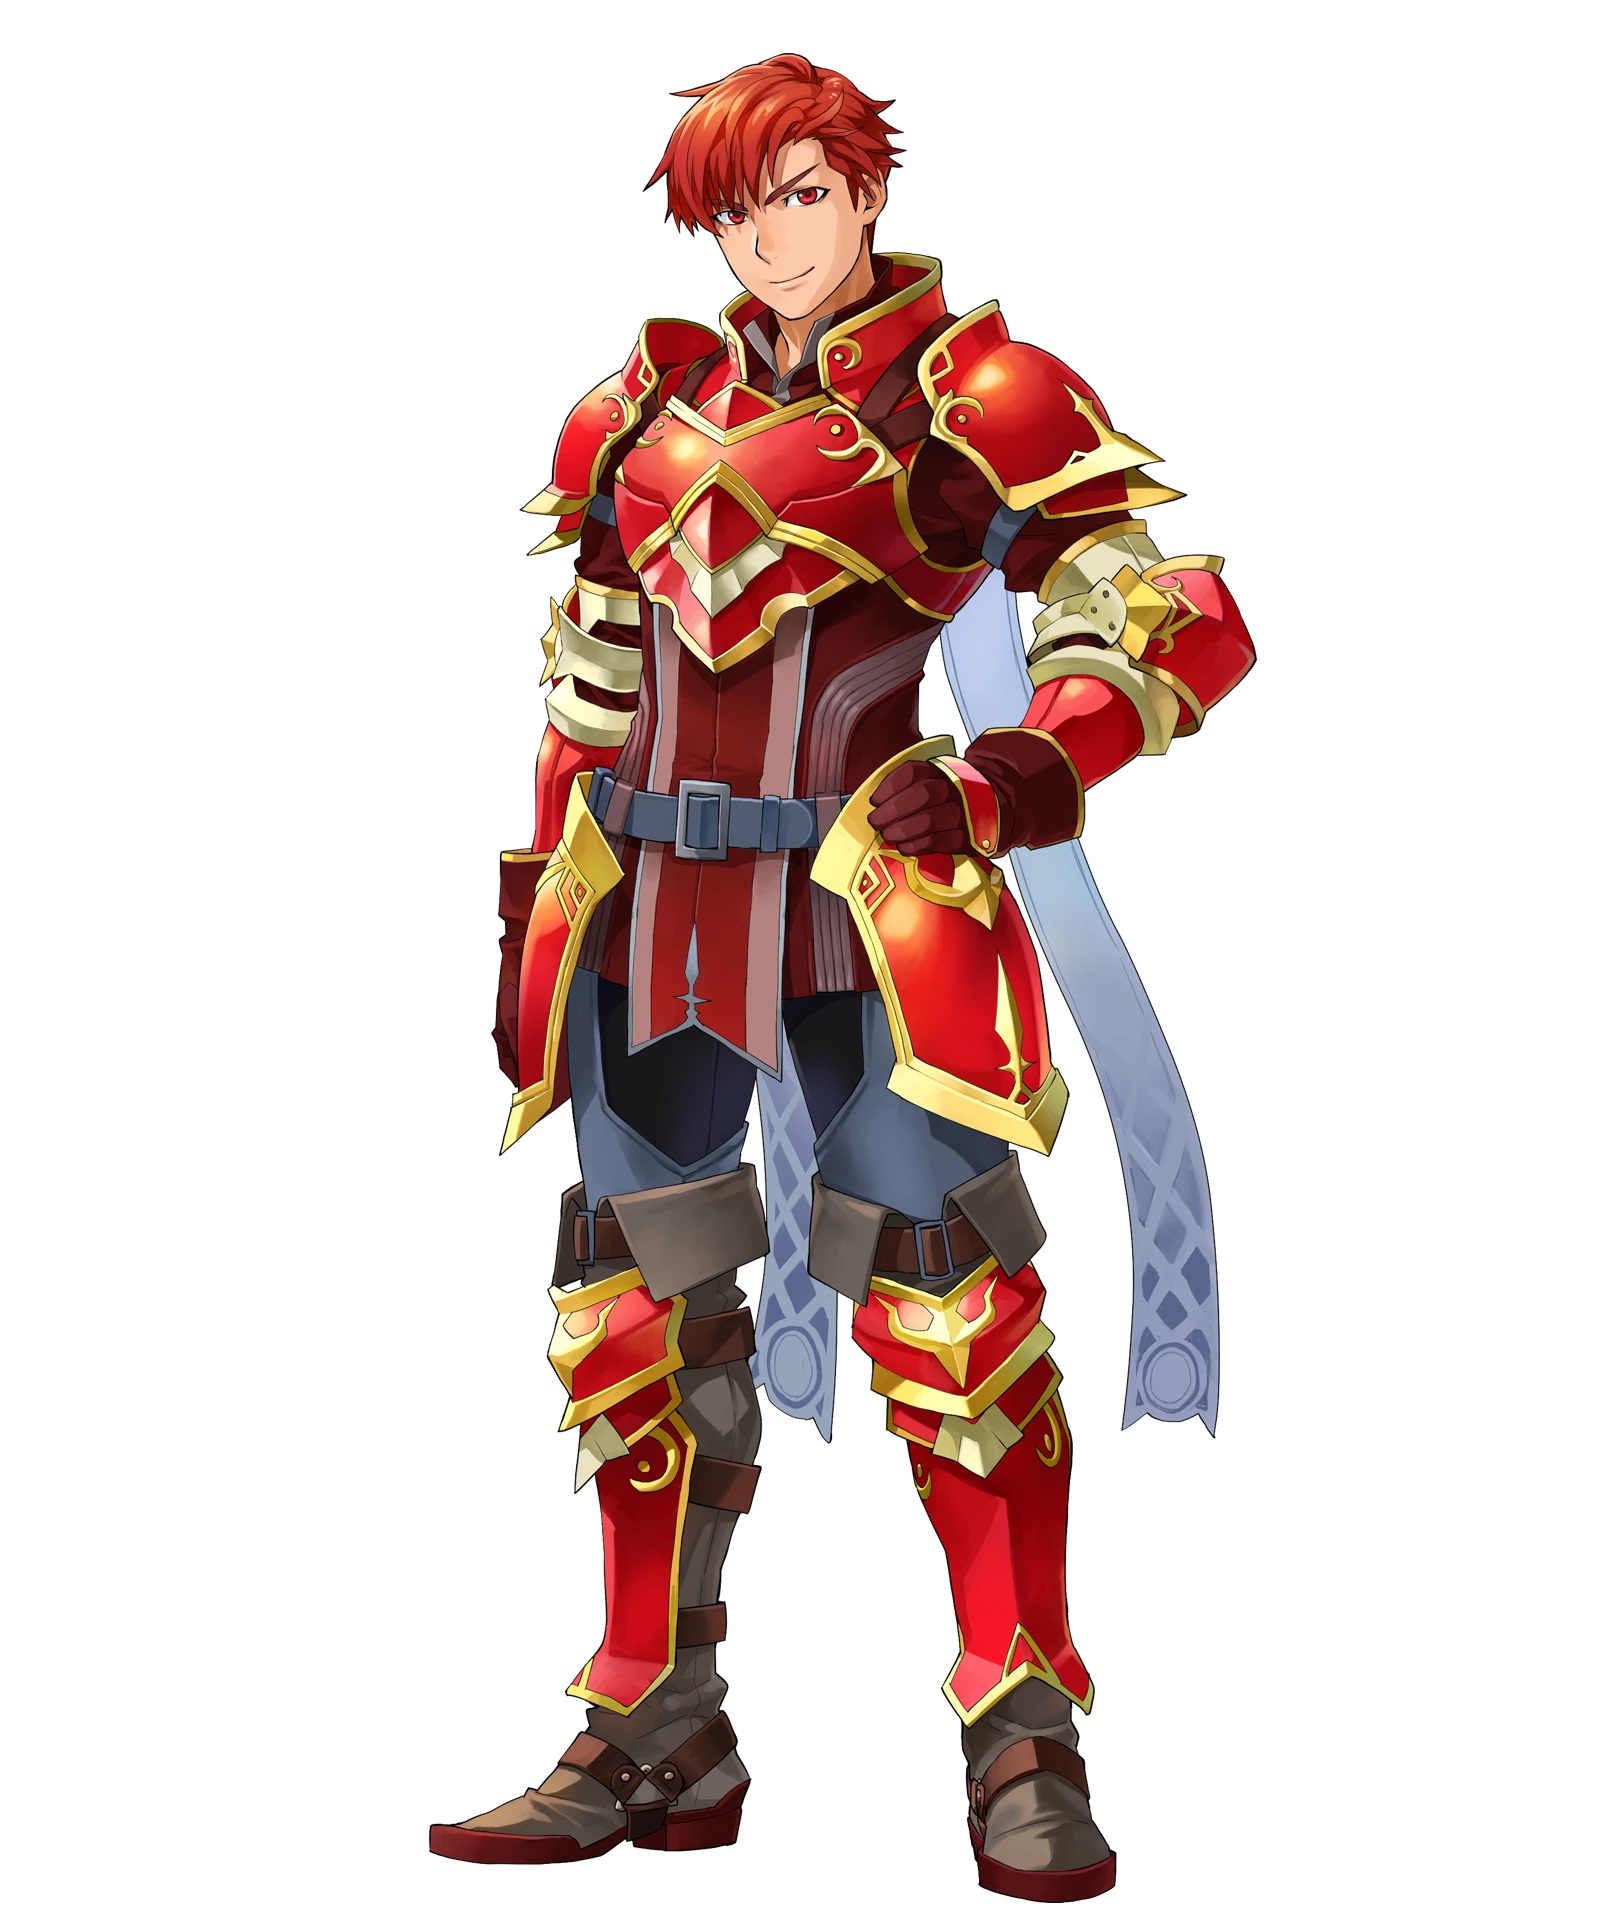 cain fire emblem heroes gamepress